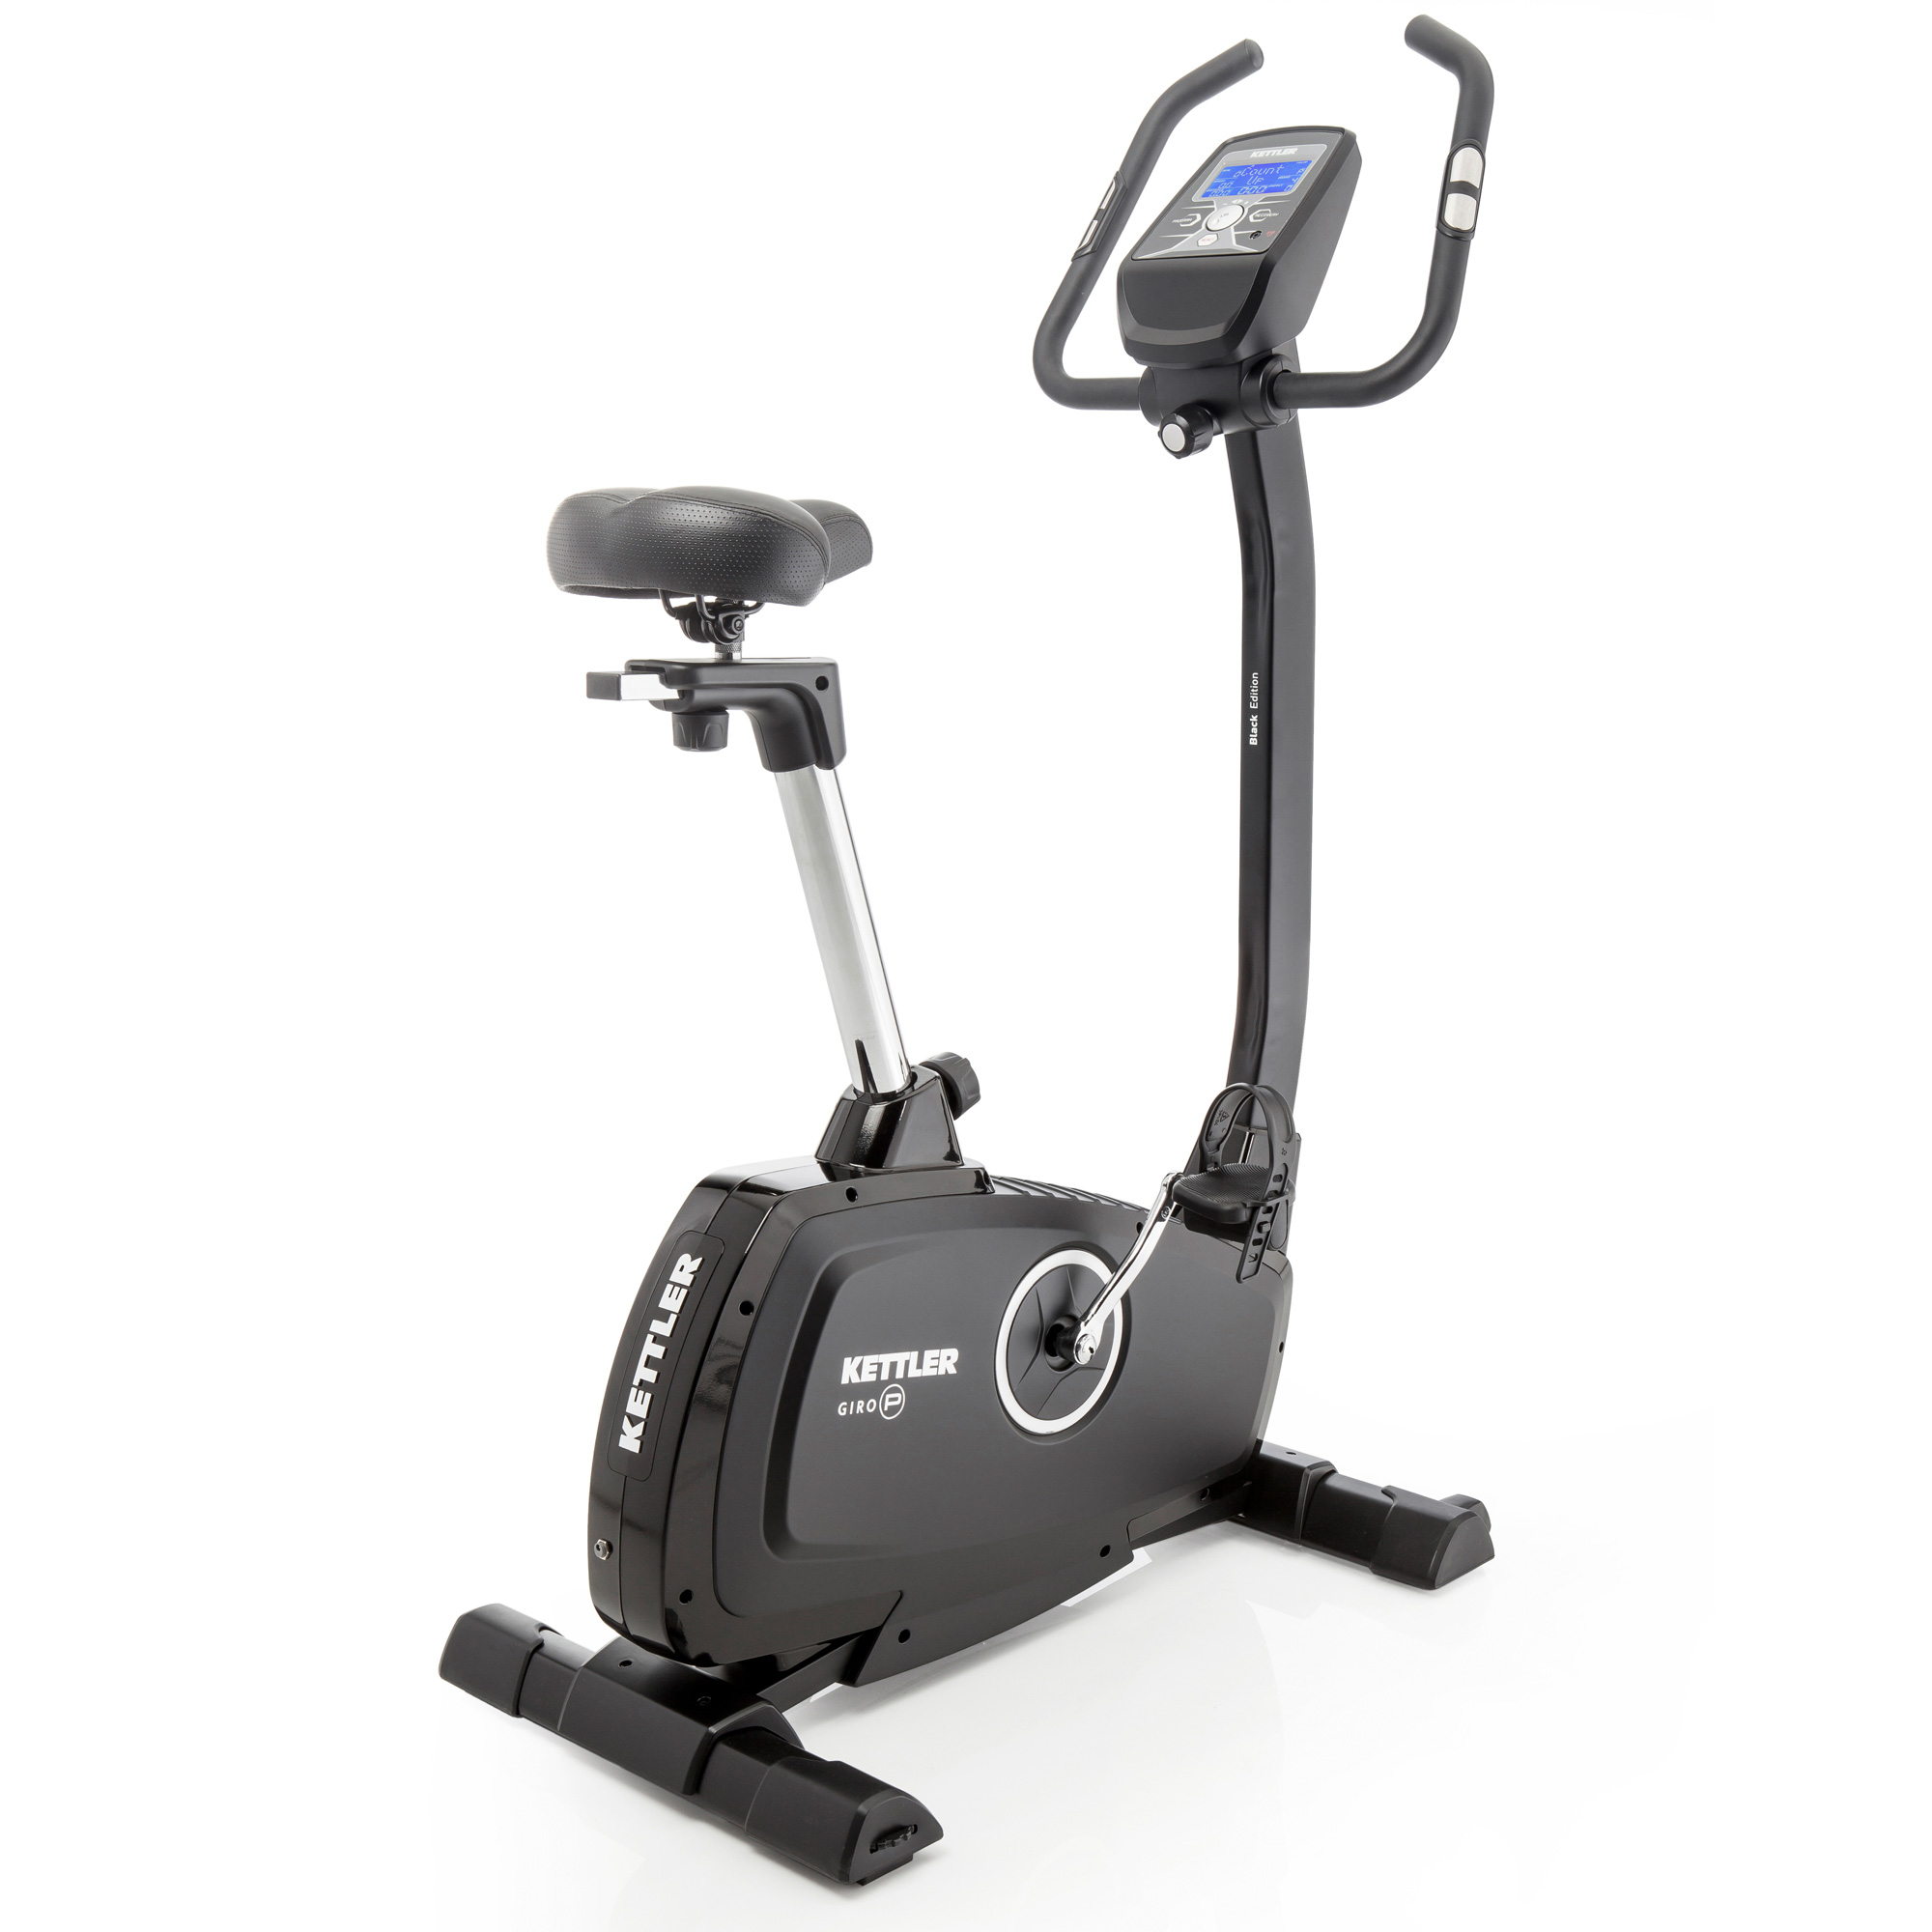 Kettler Fitness Kettler Exercise Bike Shop For Cheap Weight Training And